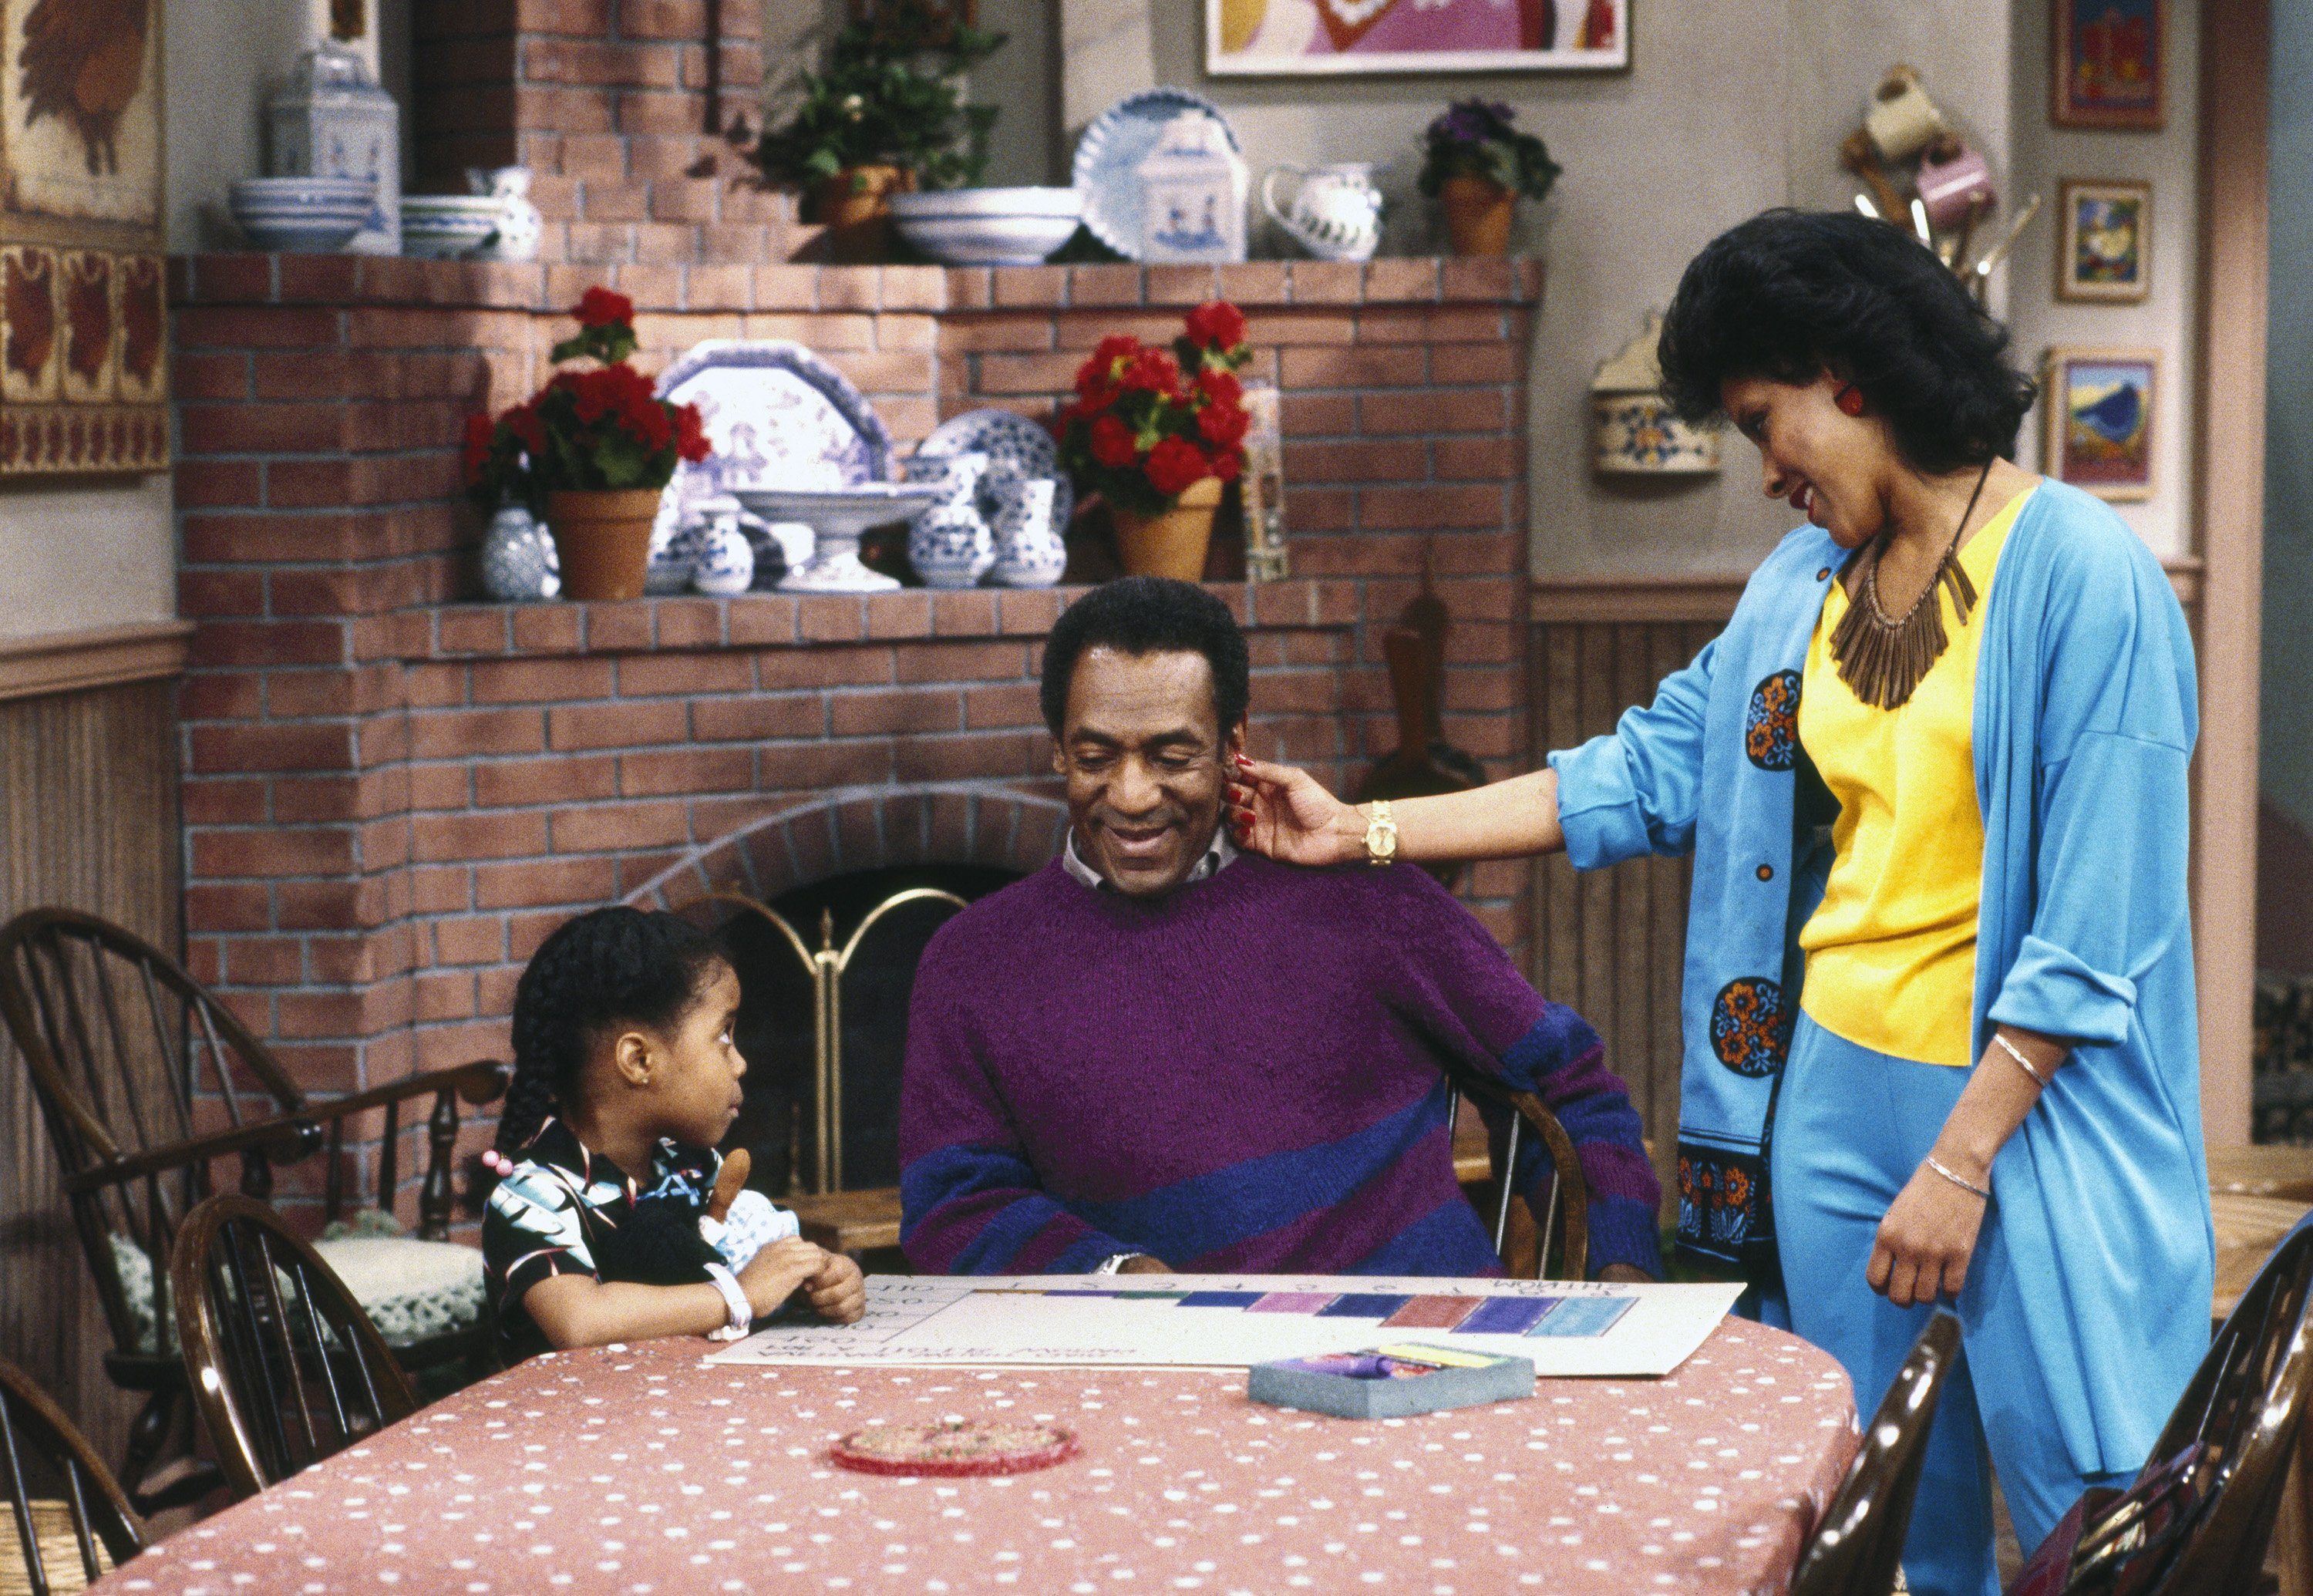 """Keshia Knight Pulliam as Rudy Huxtable, Bill Cosby as Dr. Heathcliff 'Cliff' Huxtable, Phylicia Rashad as Clair Hanks Huxtable """"The Cosby Show"""" 